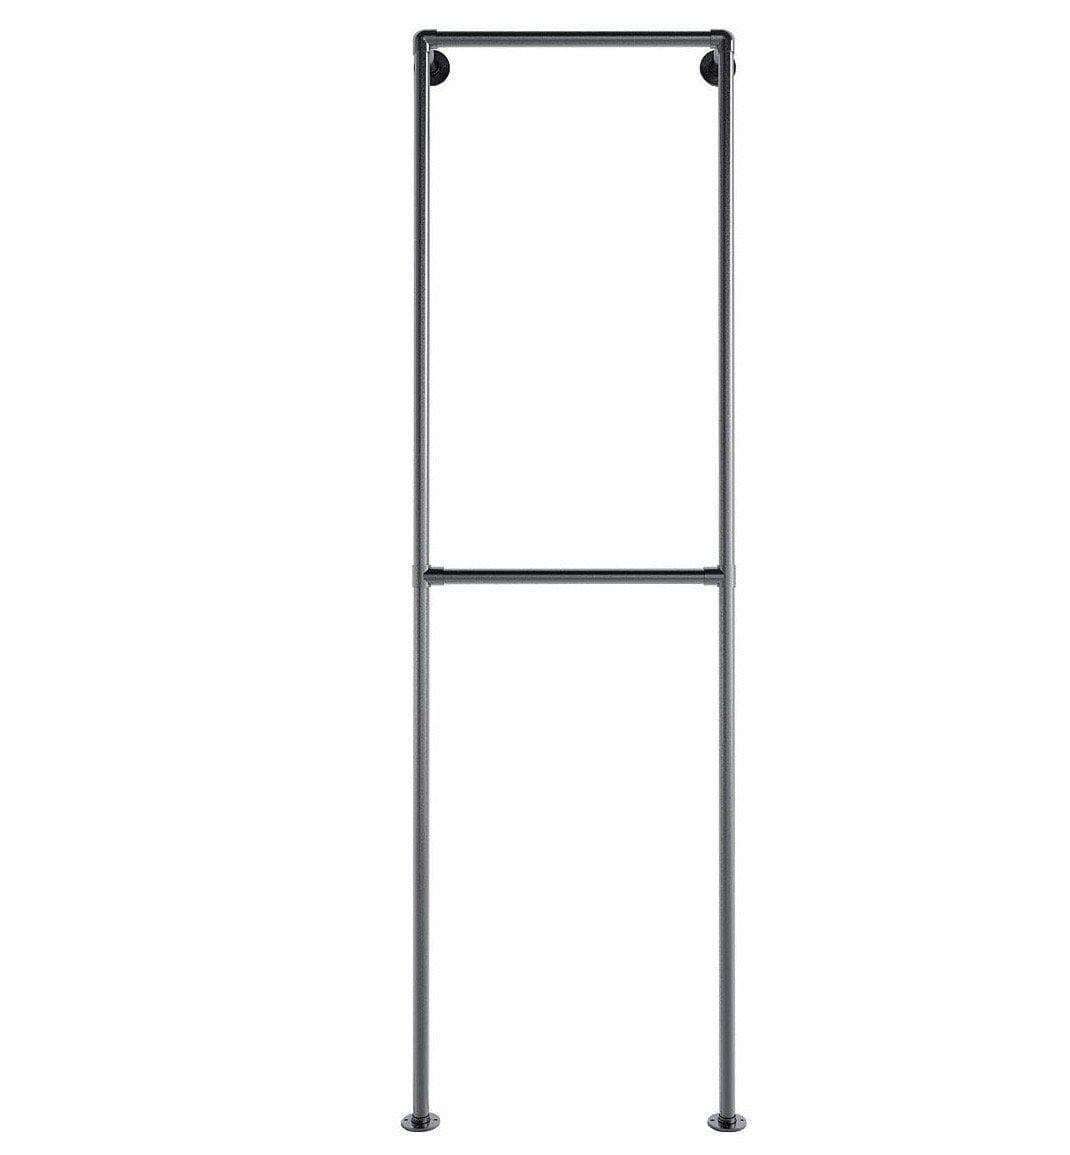 Ziito Clothes Rail Aska / 50 cm Double Wall Tøjstativ